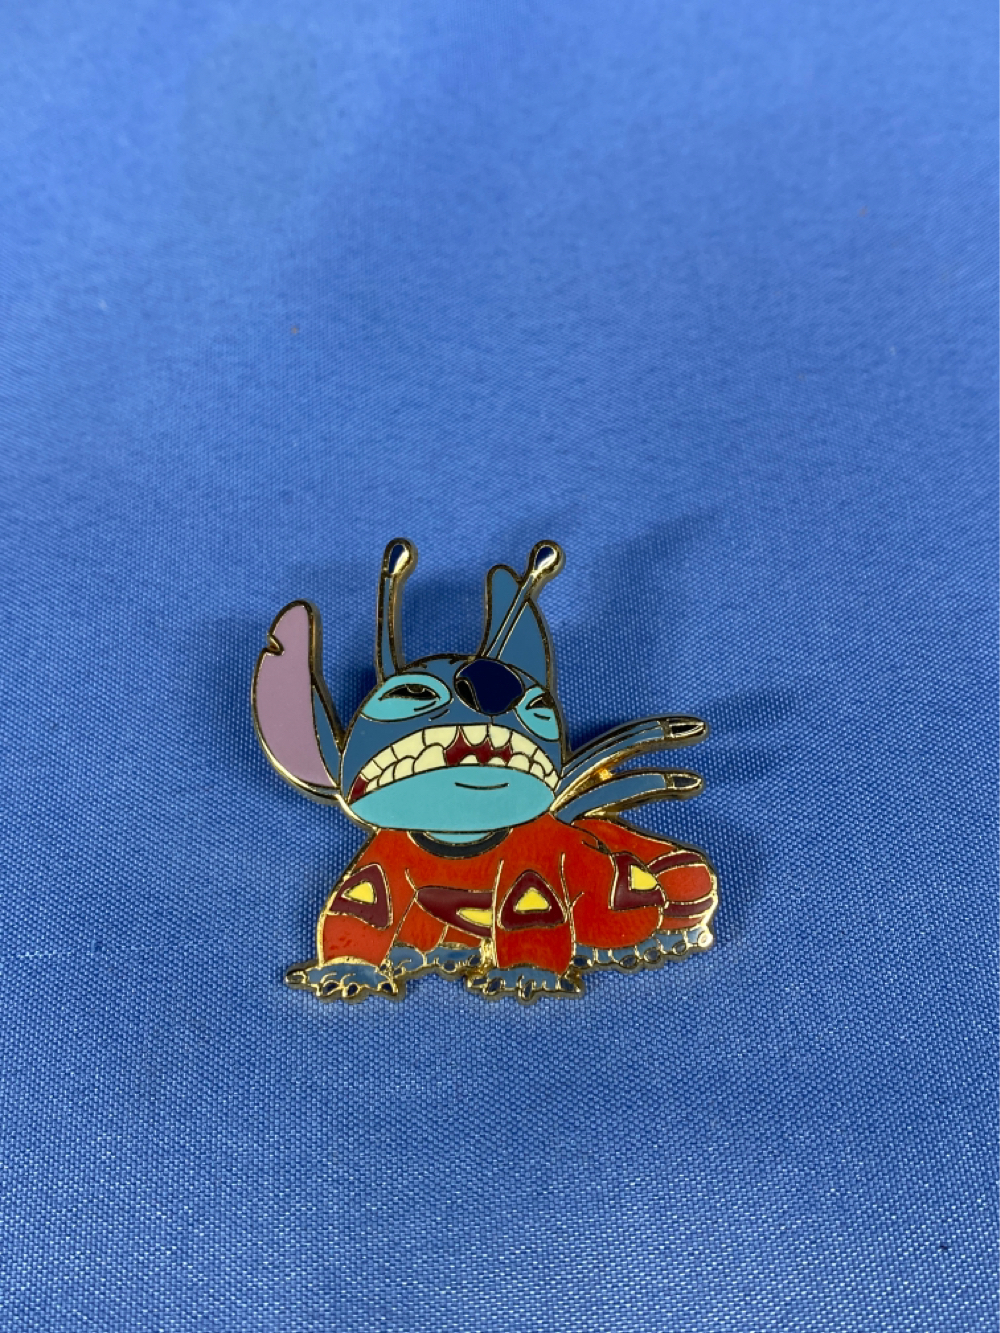 Primary image for Blue Alien Stitch Crawling in Space Suit Disney pin